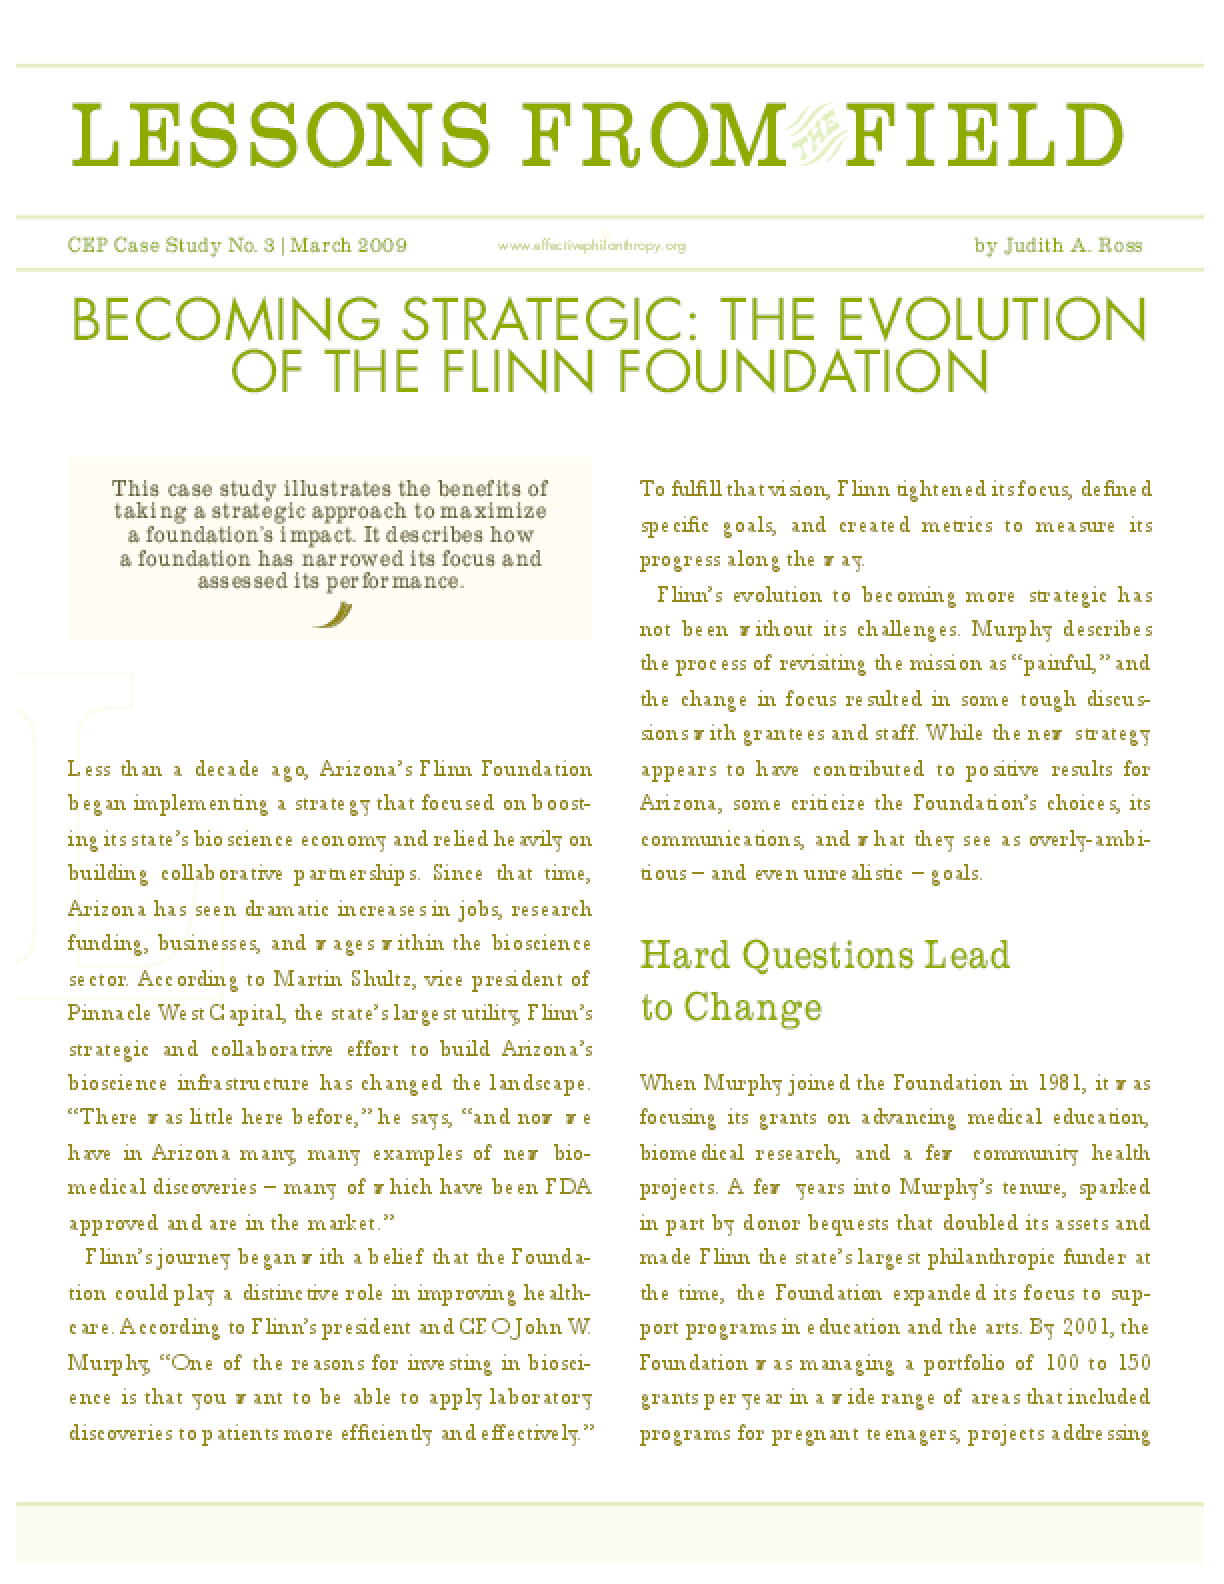 Lessons From the Field: Becoming Strategic: The Evolution of the Flinn Foundation